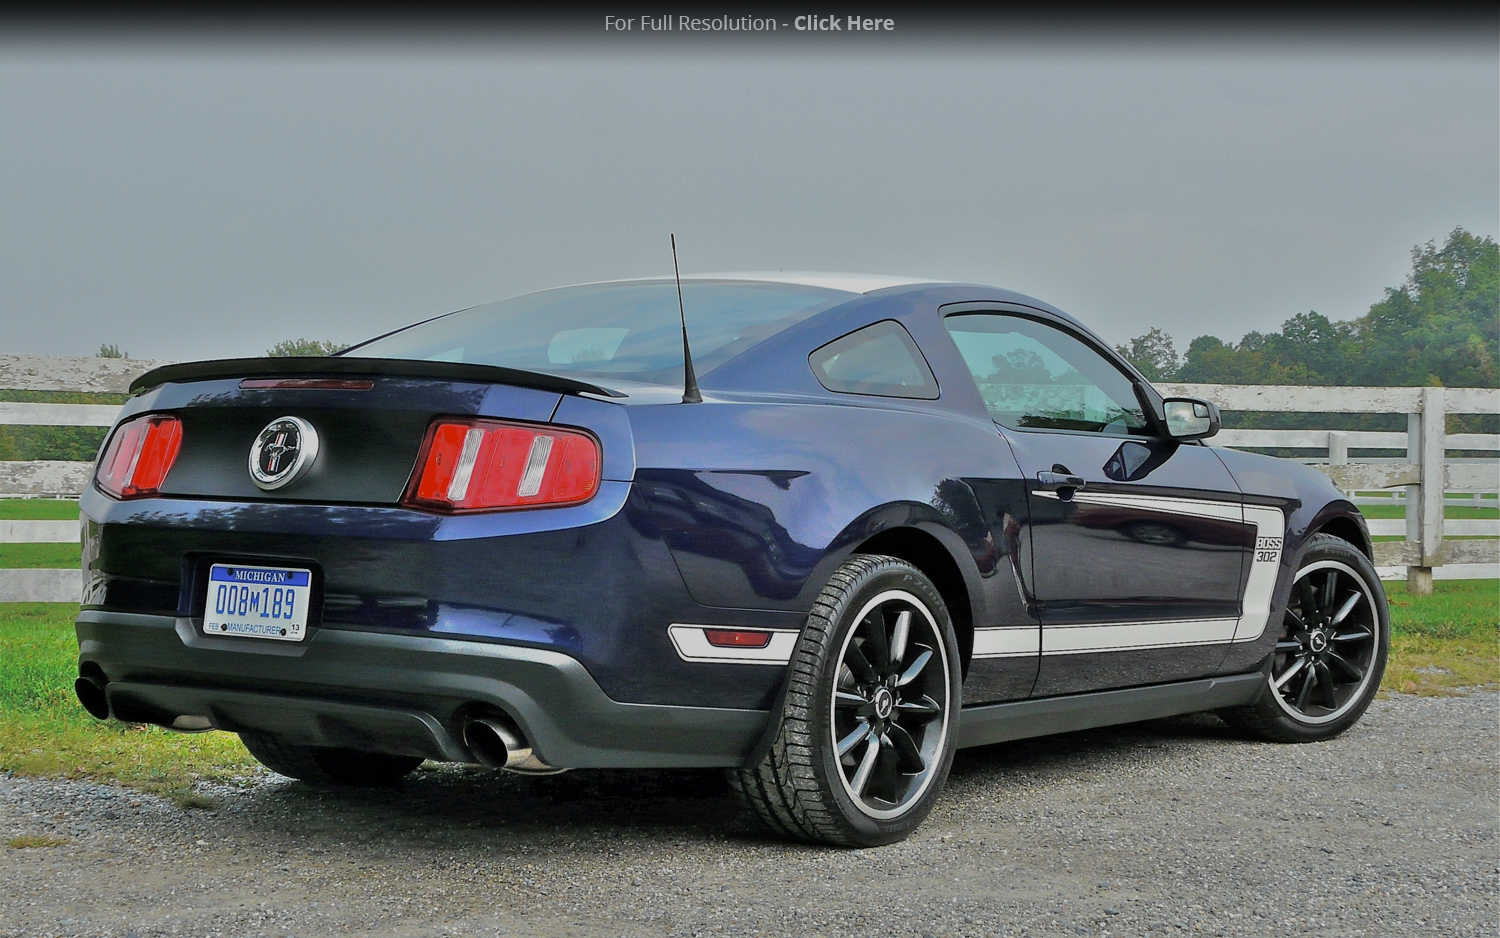 2012 Ford Mustang Boss 302 photo - 2